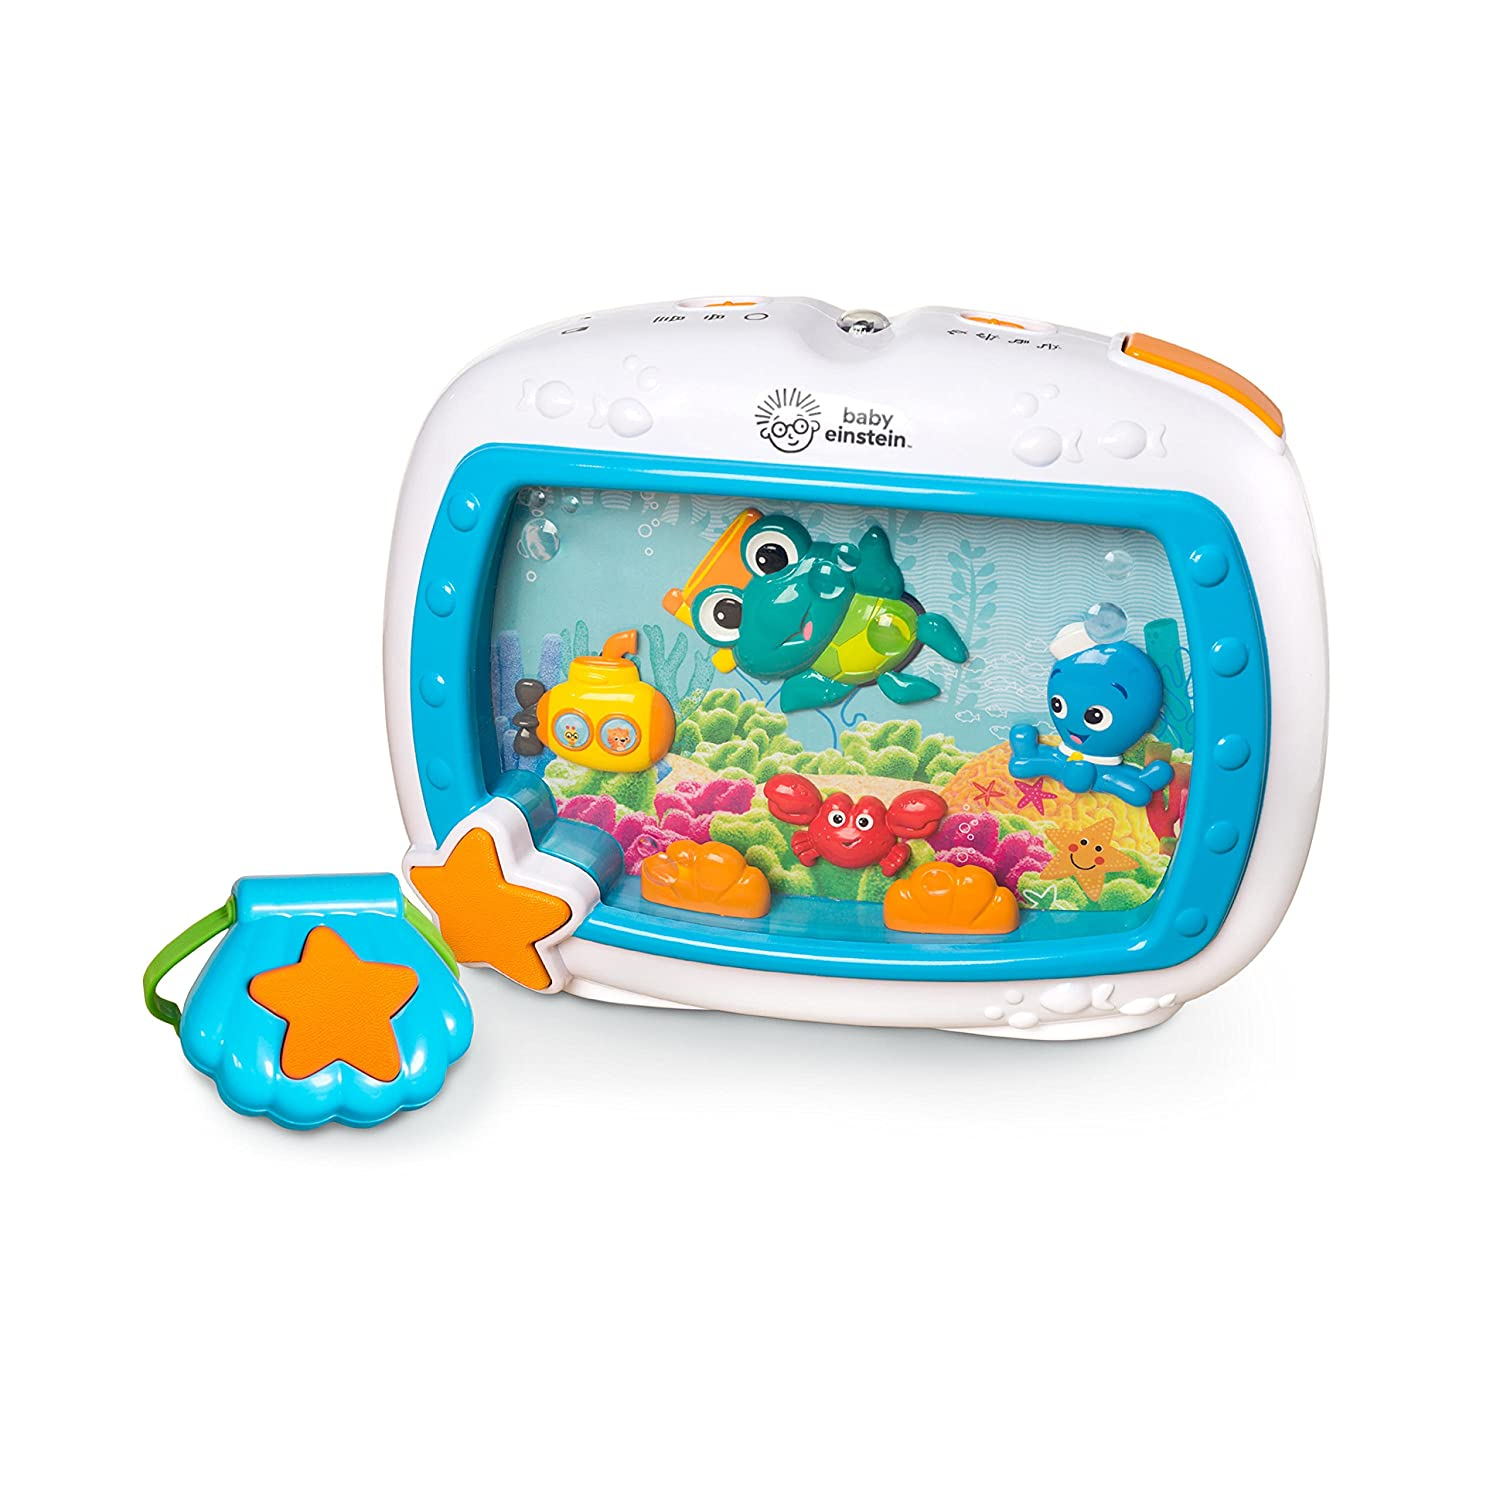 Baby Einstein Sea Dreams Soother Crib Toy with Remote, Lights and Melodies for Newborns and up Kids II - (Carson CA) 11058